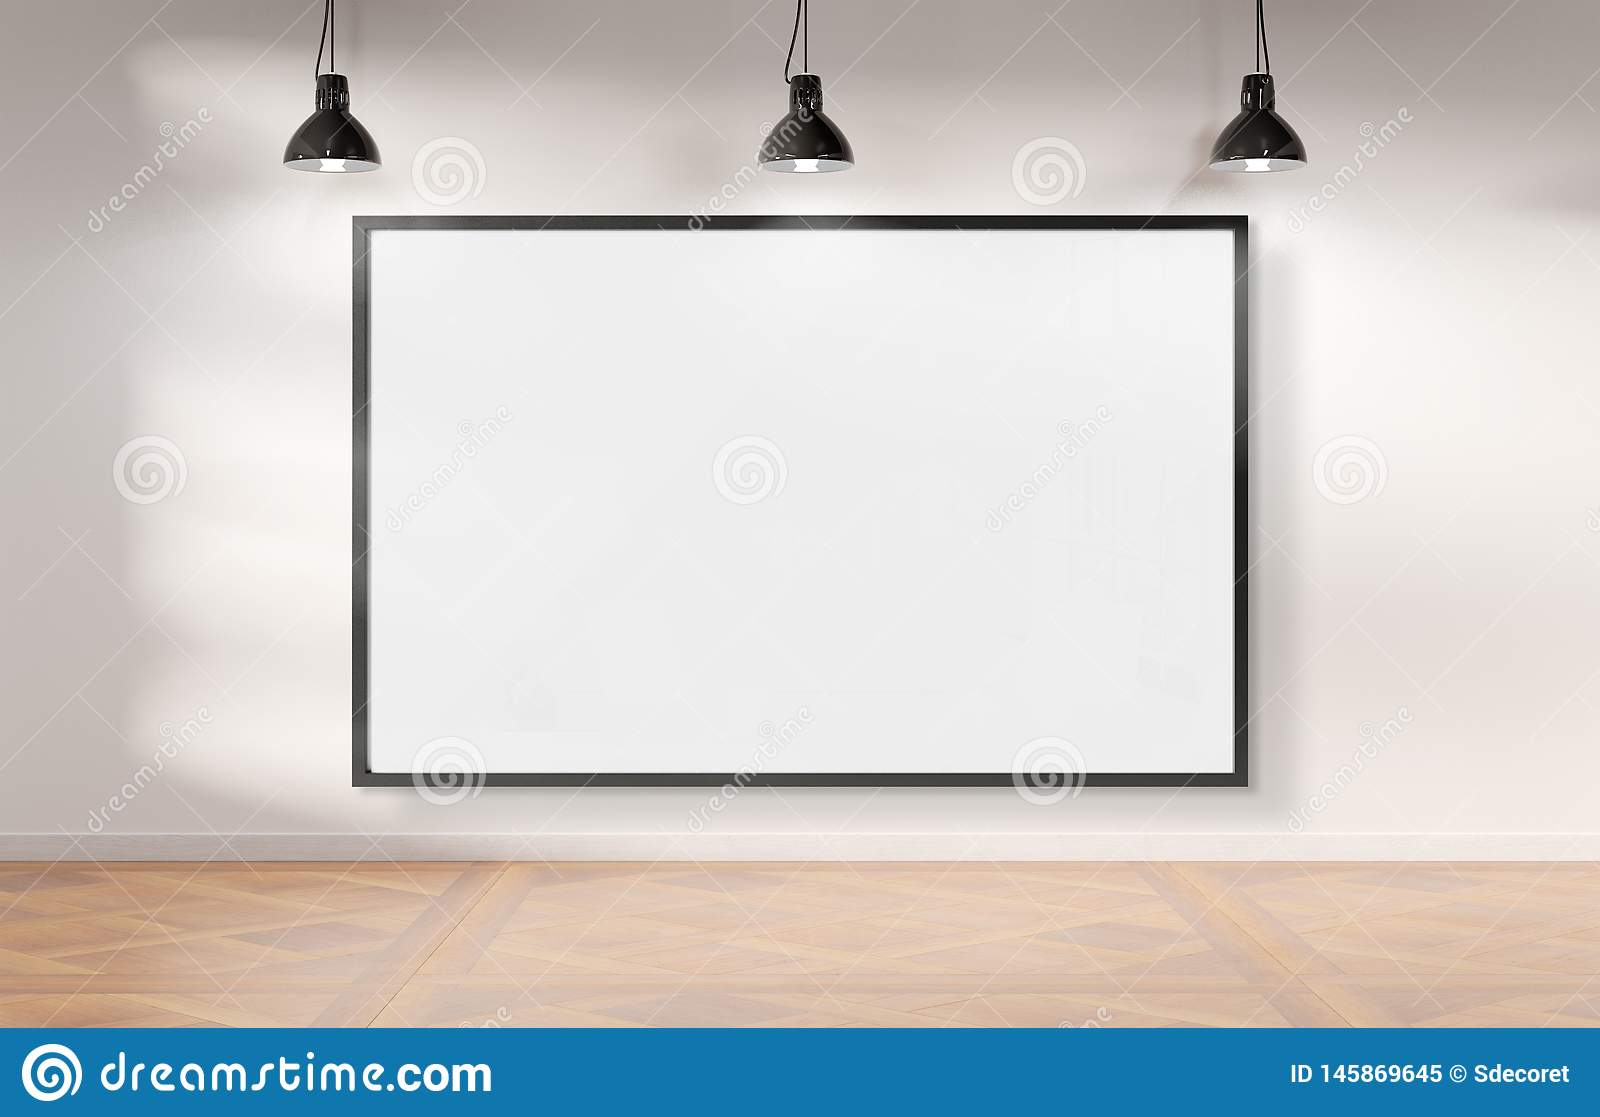 Frame hanging bright white museum with wooden floor mockup 3D rendering